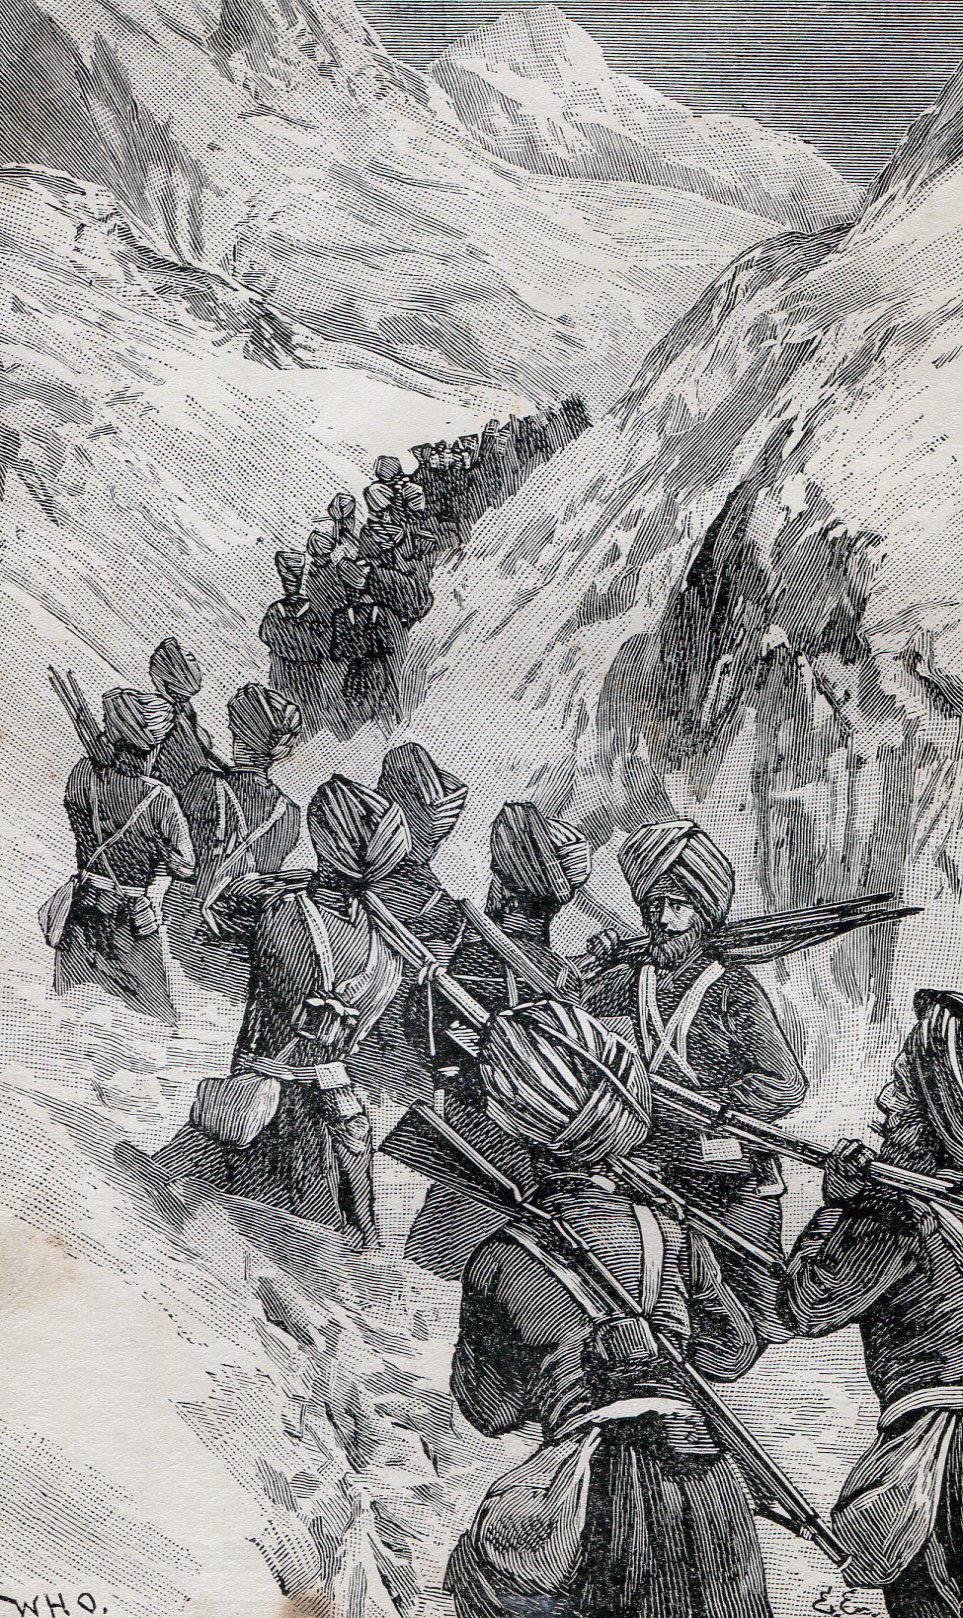 Sikhs carrying the mountain guns across the Shandur Pass: Siege and Relief oaf Chitral, 3rd March to 20th April 1895 on the North-West Frontier of India: picture by William Overend